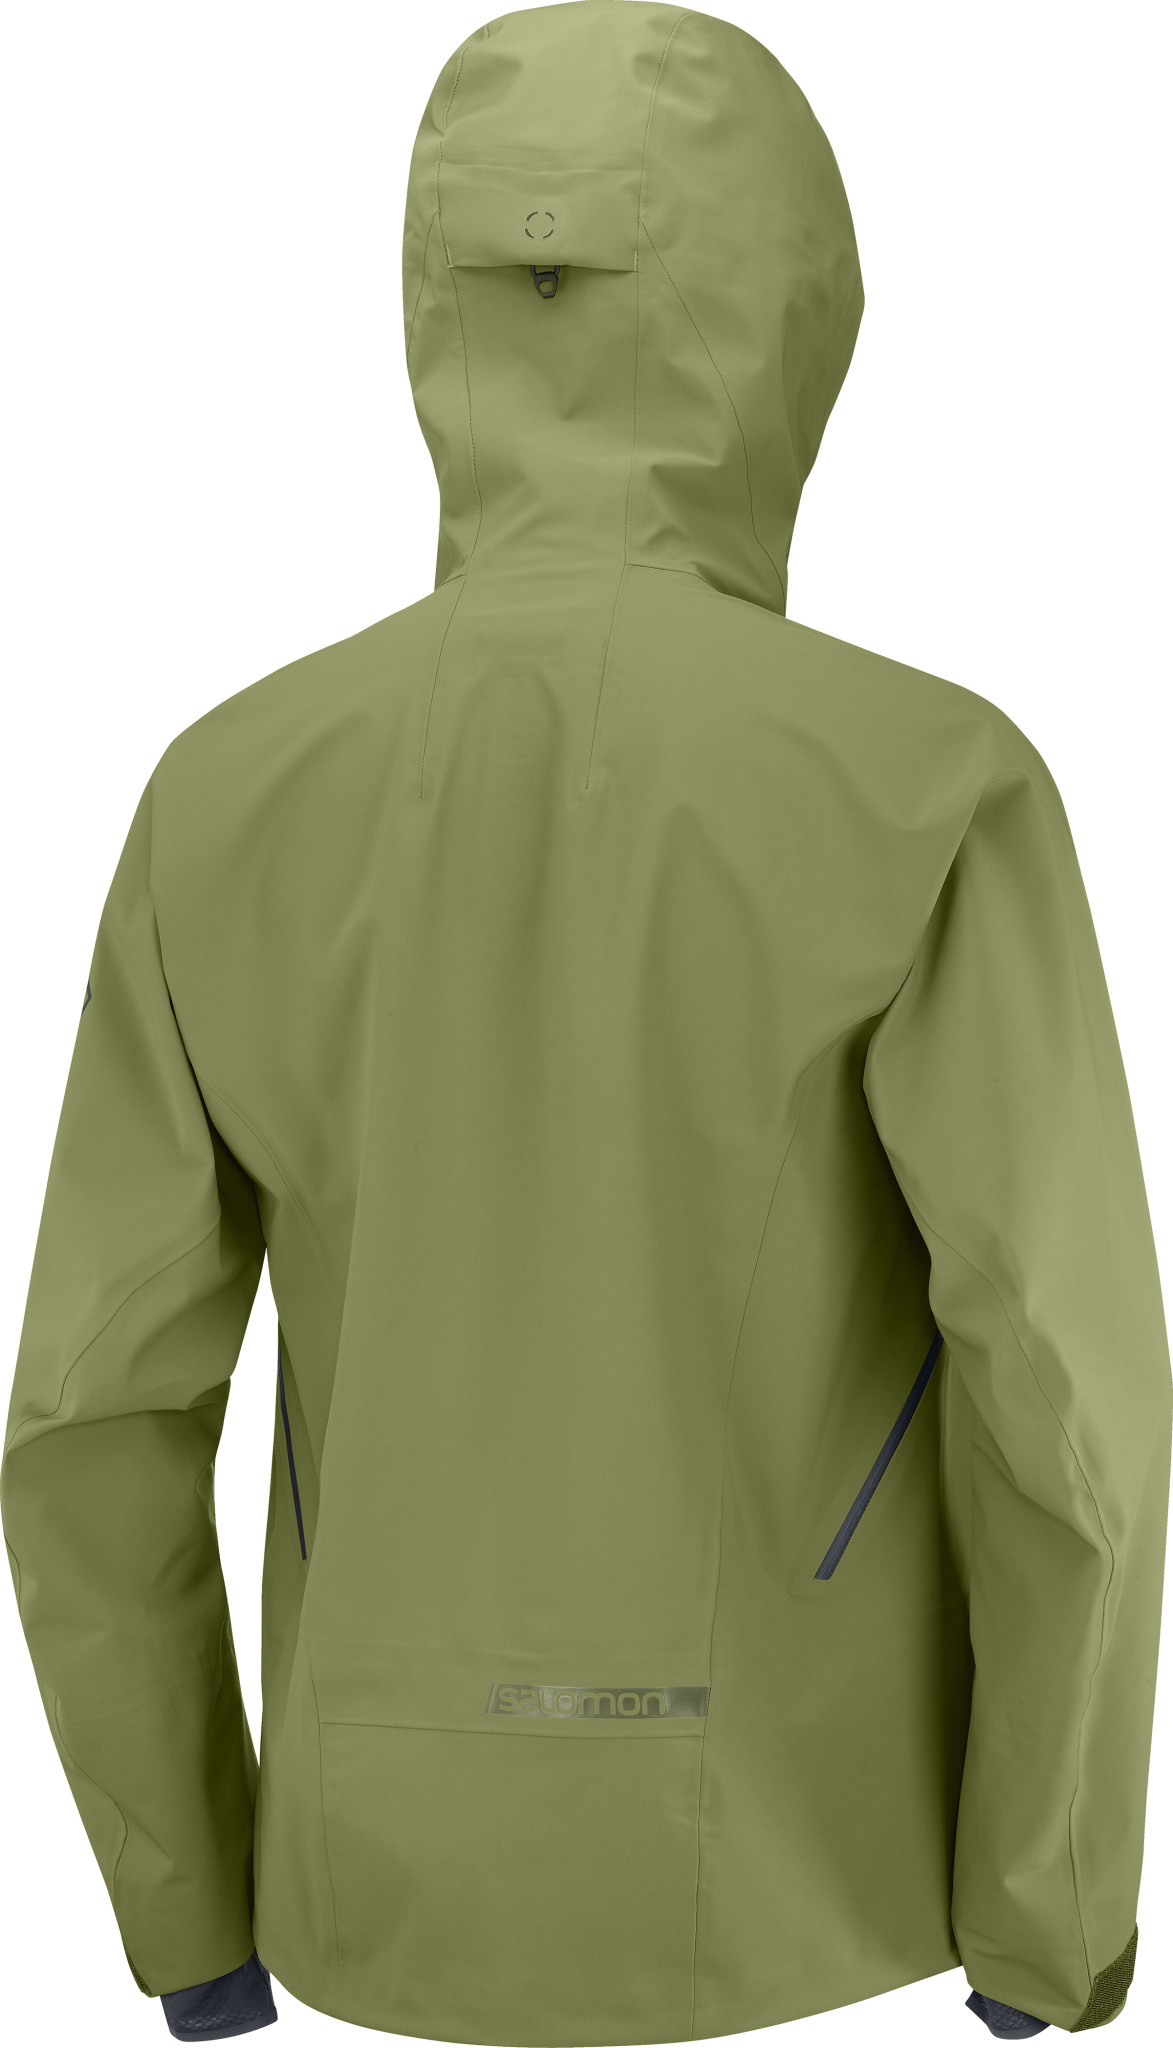 OUTLAW 3L SHELL JACKET M-3